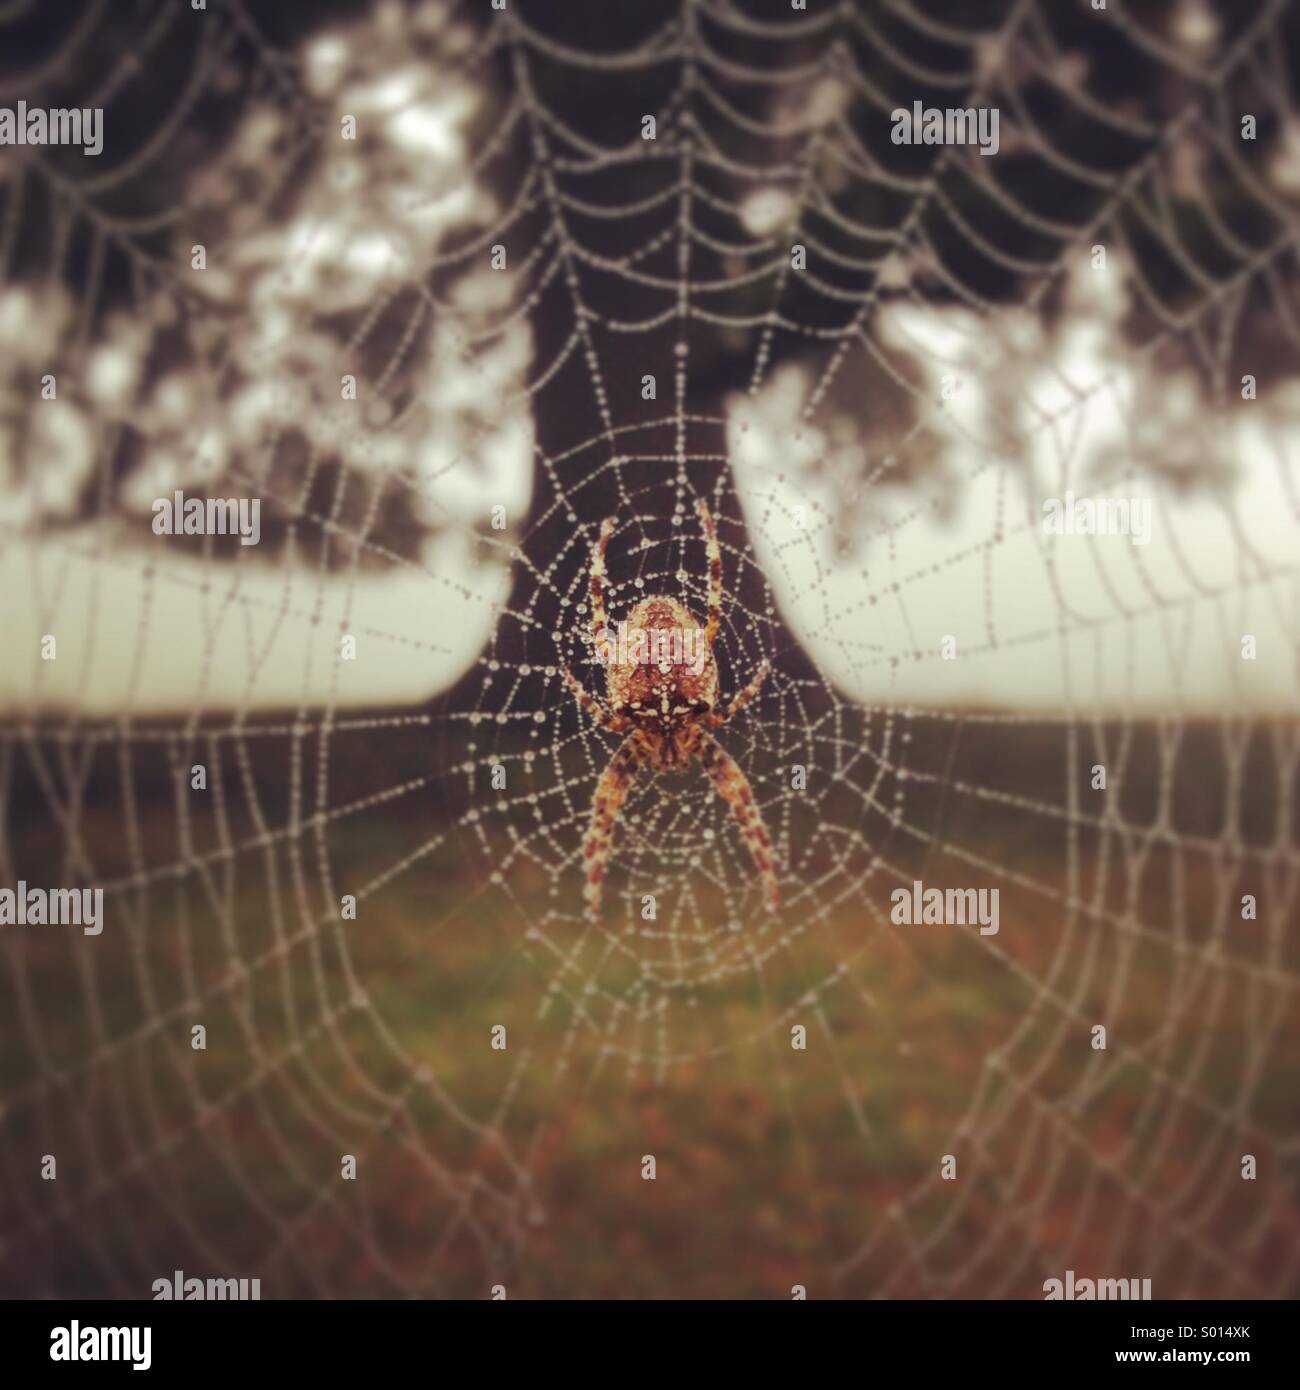 Orb spider - Stock Image